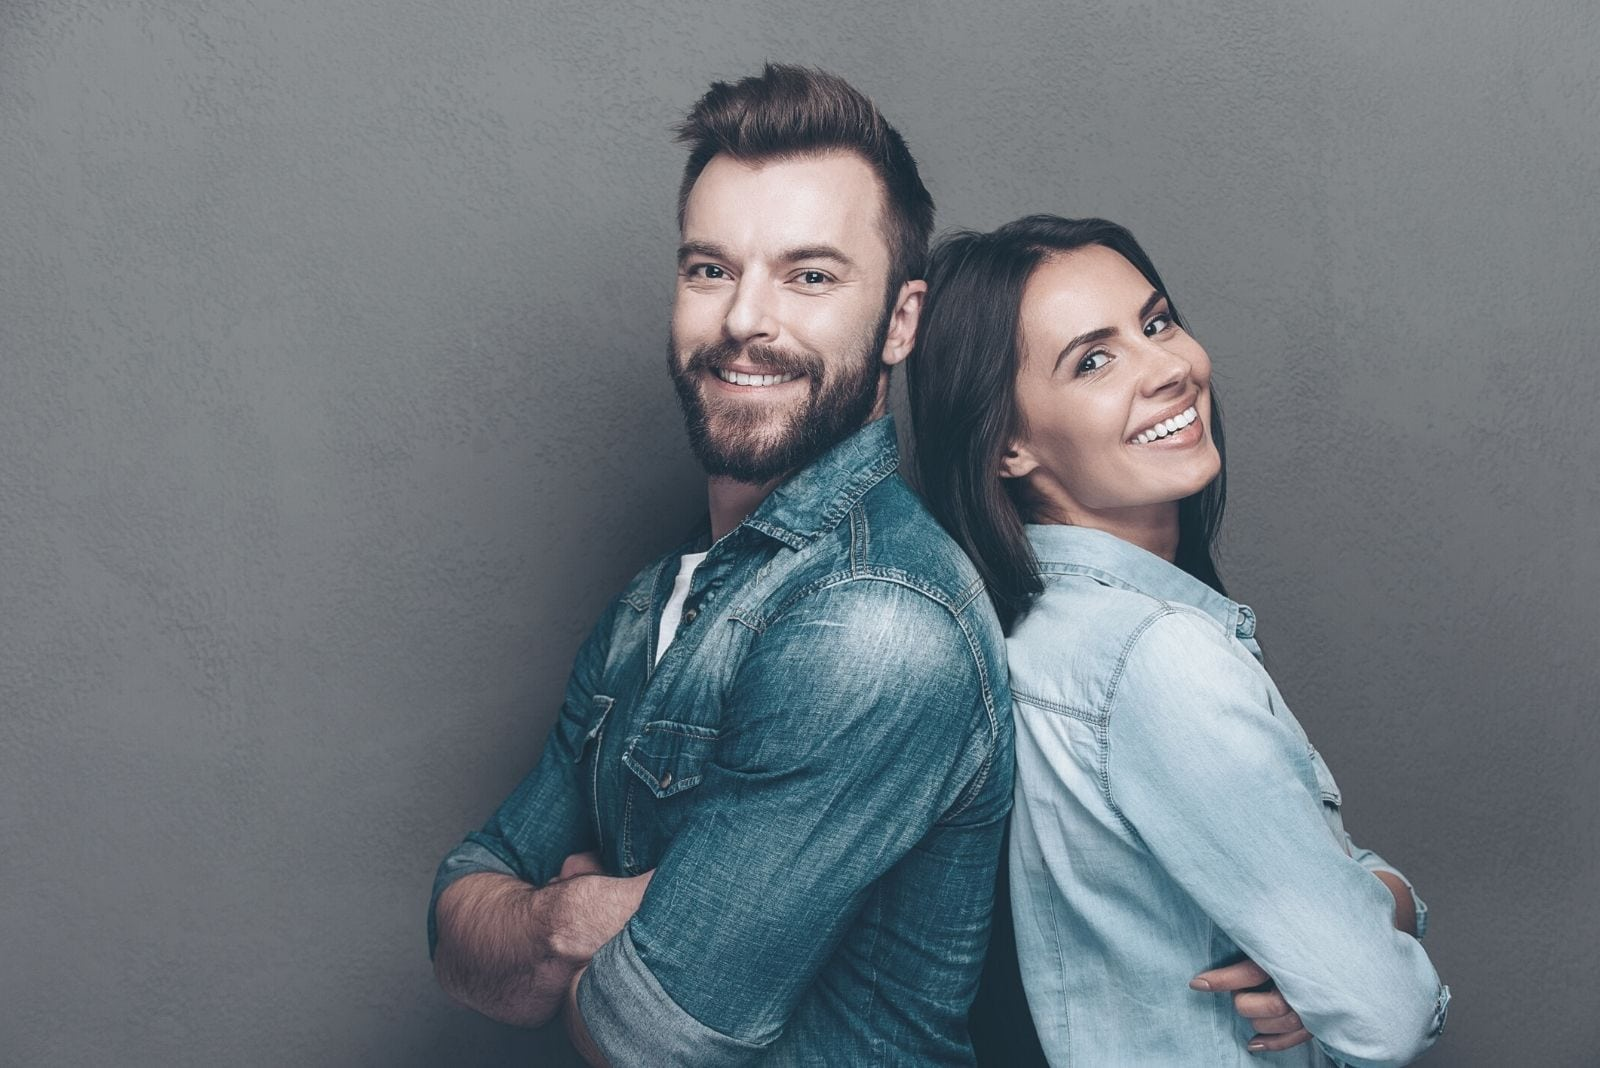 studio shot of a young couple in jeans standing back to back and smiling